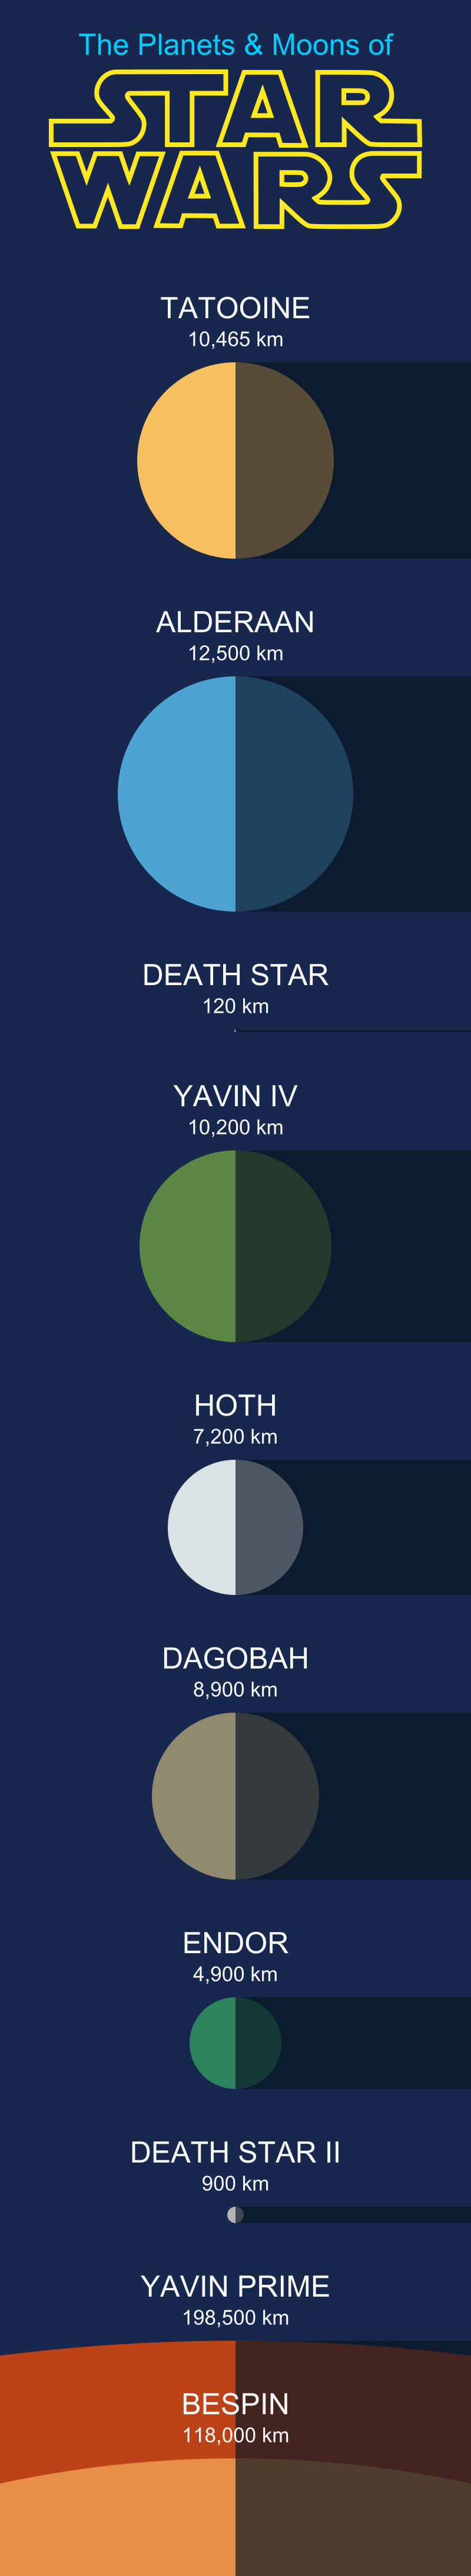 The Planets and Moons of Star Wars to Scale